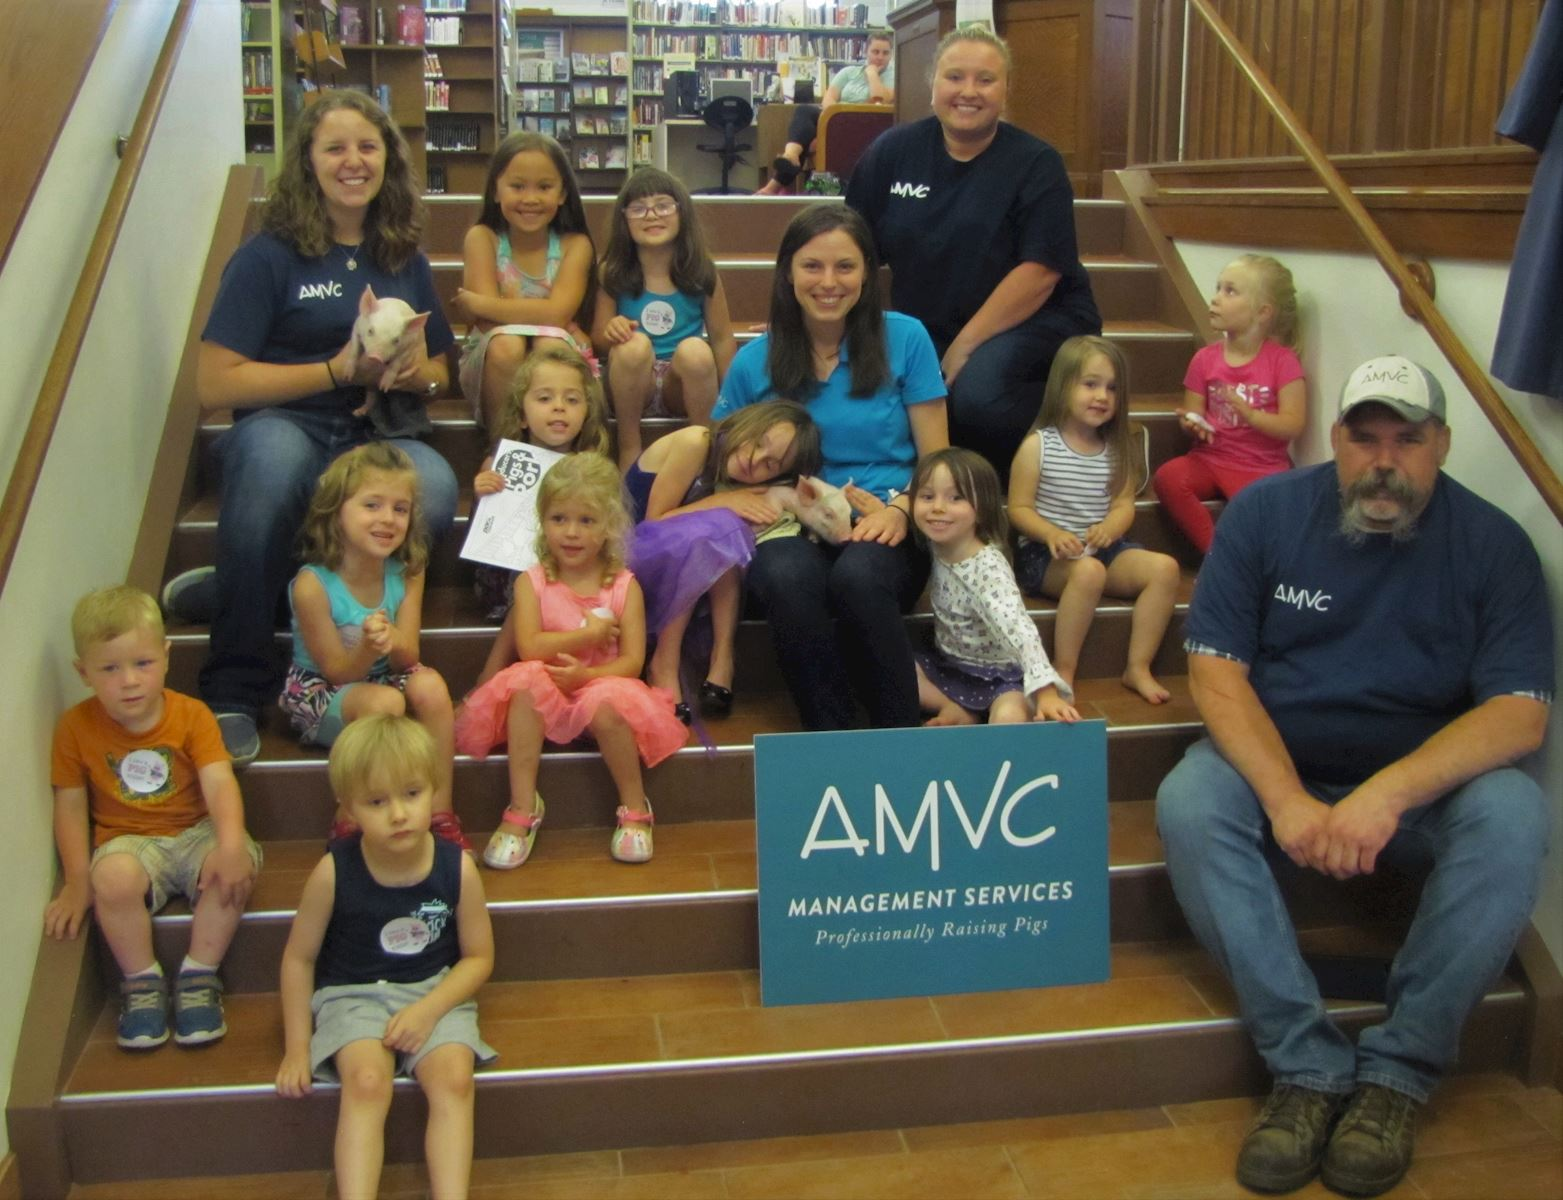 AMVC employees pose with some of the children that attended the Piglet Storytime at the Colfax-Perry